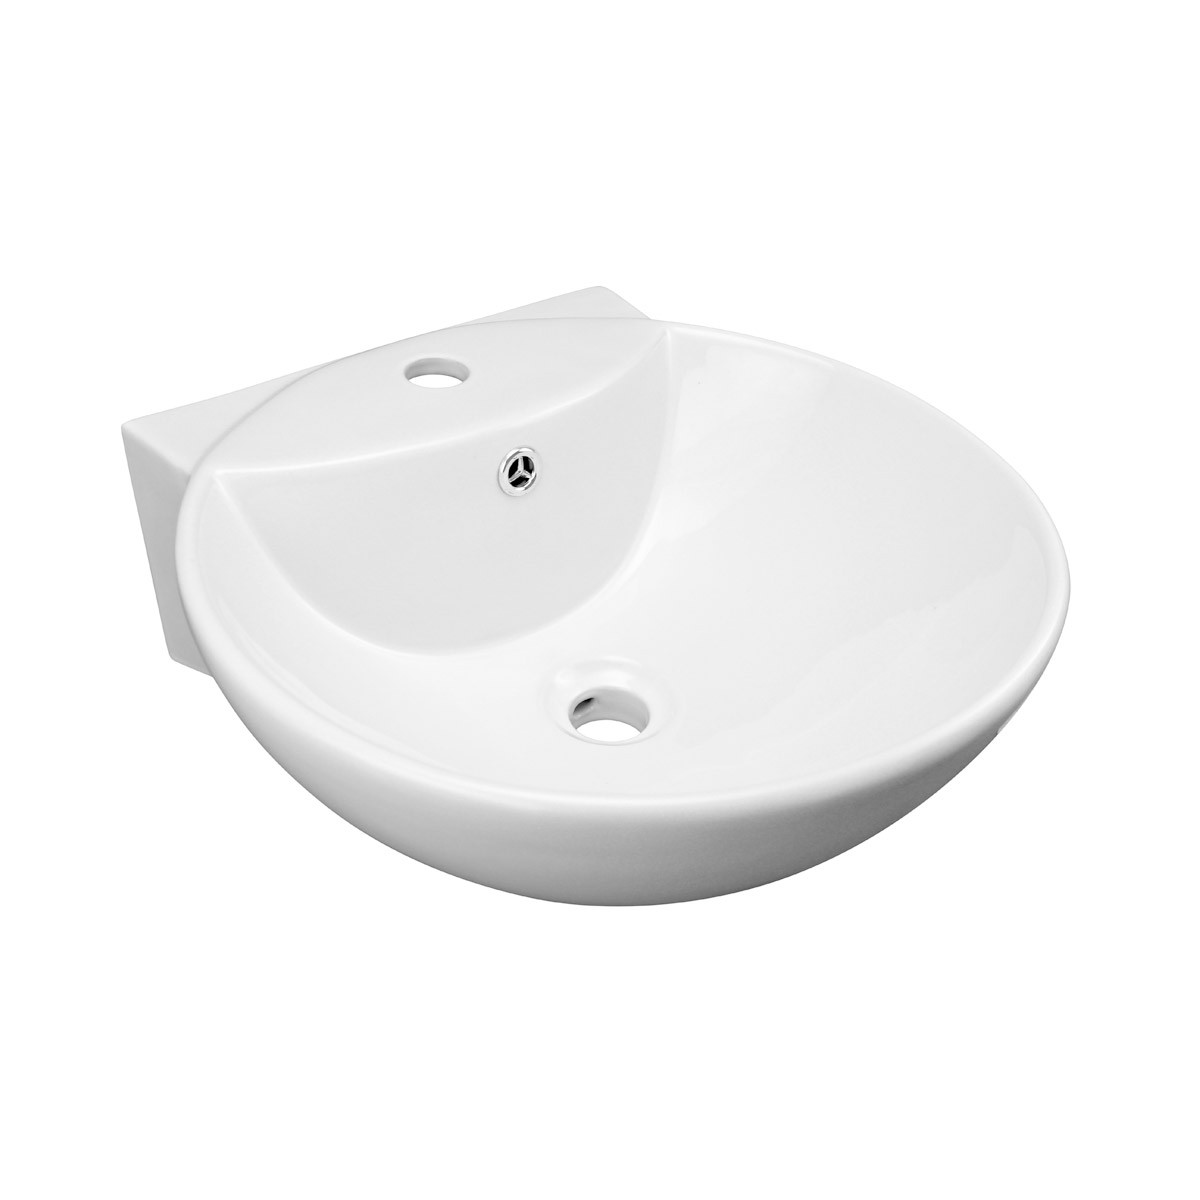 Small Vessel Bathroom Sinks : Small Bathroom Sink Vessel White China Wall Mount